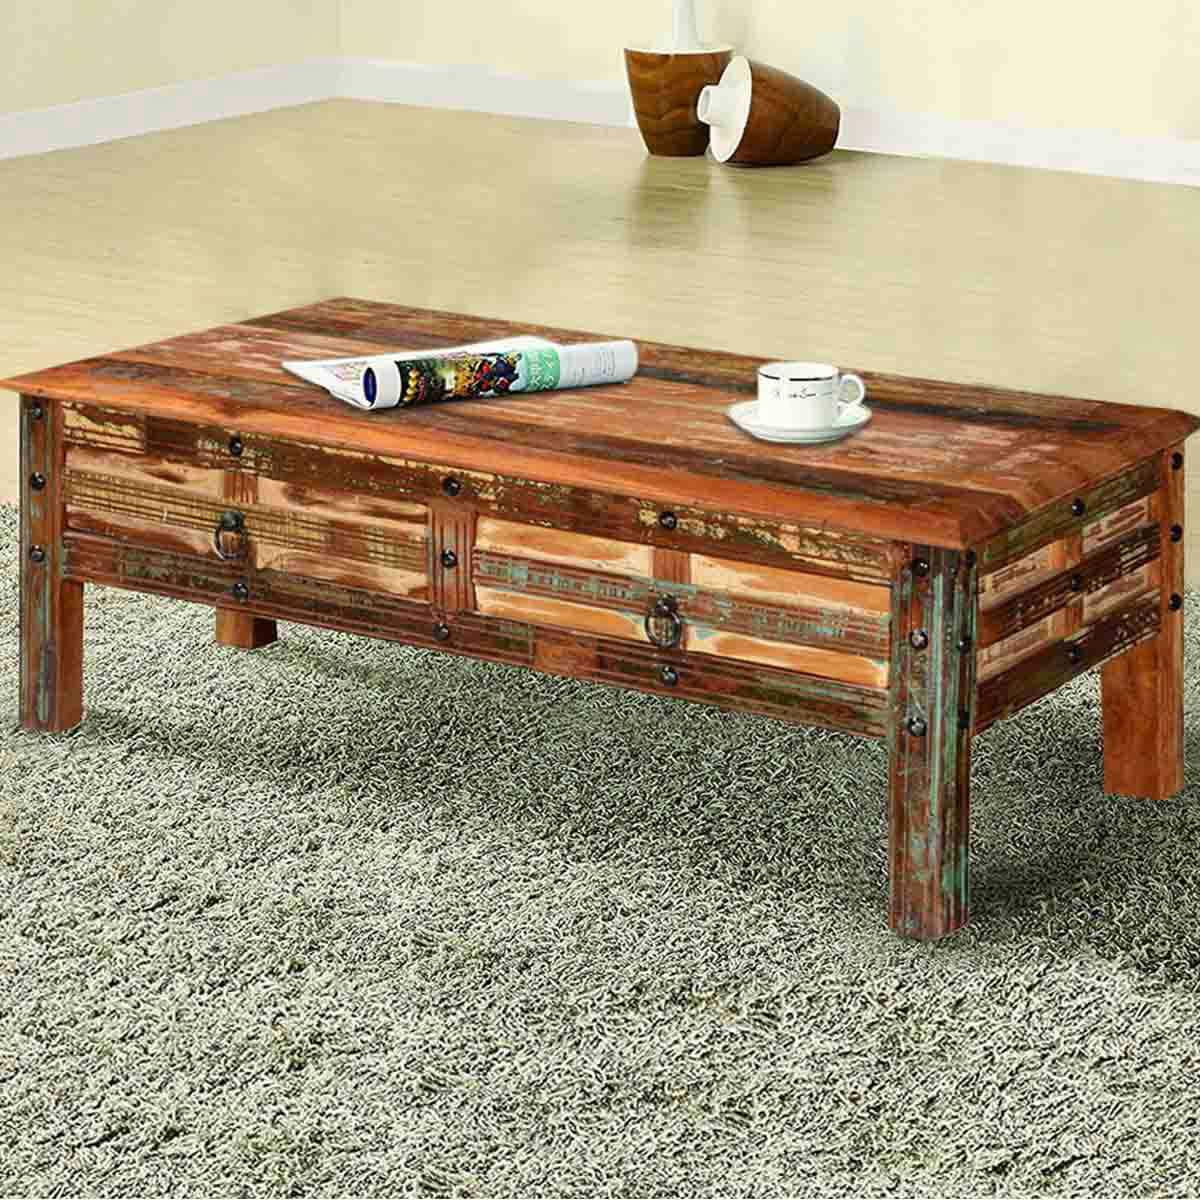 Couchtisch Rustikal Holz Pioneer Rustic Reclaimed Wood 2 Drawer Coffee Table